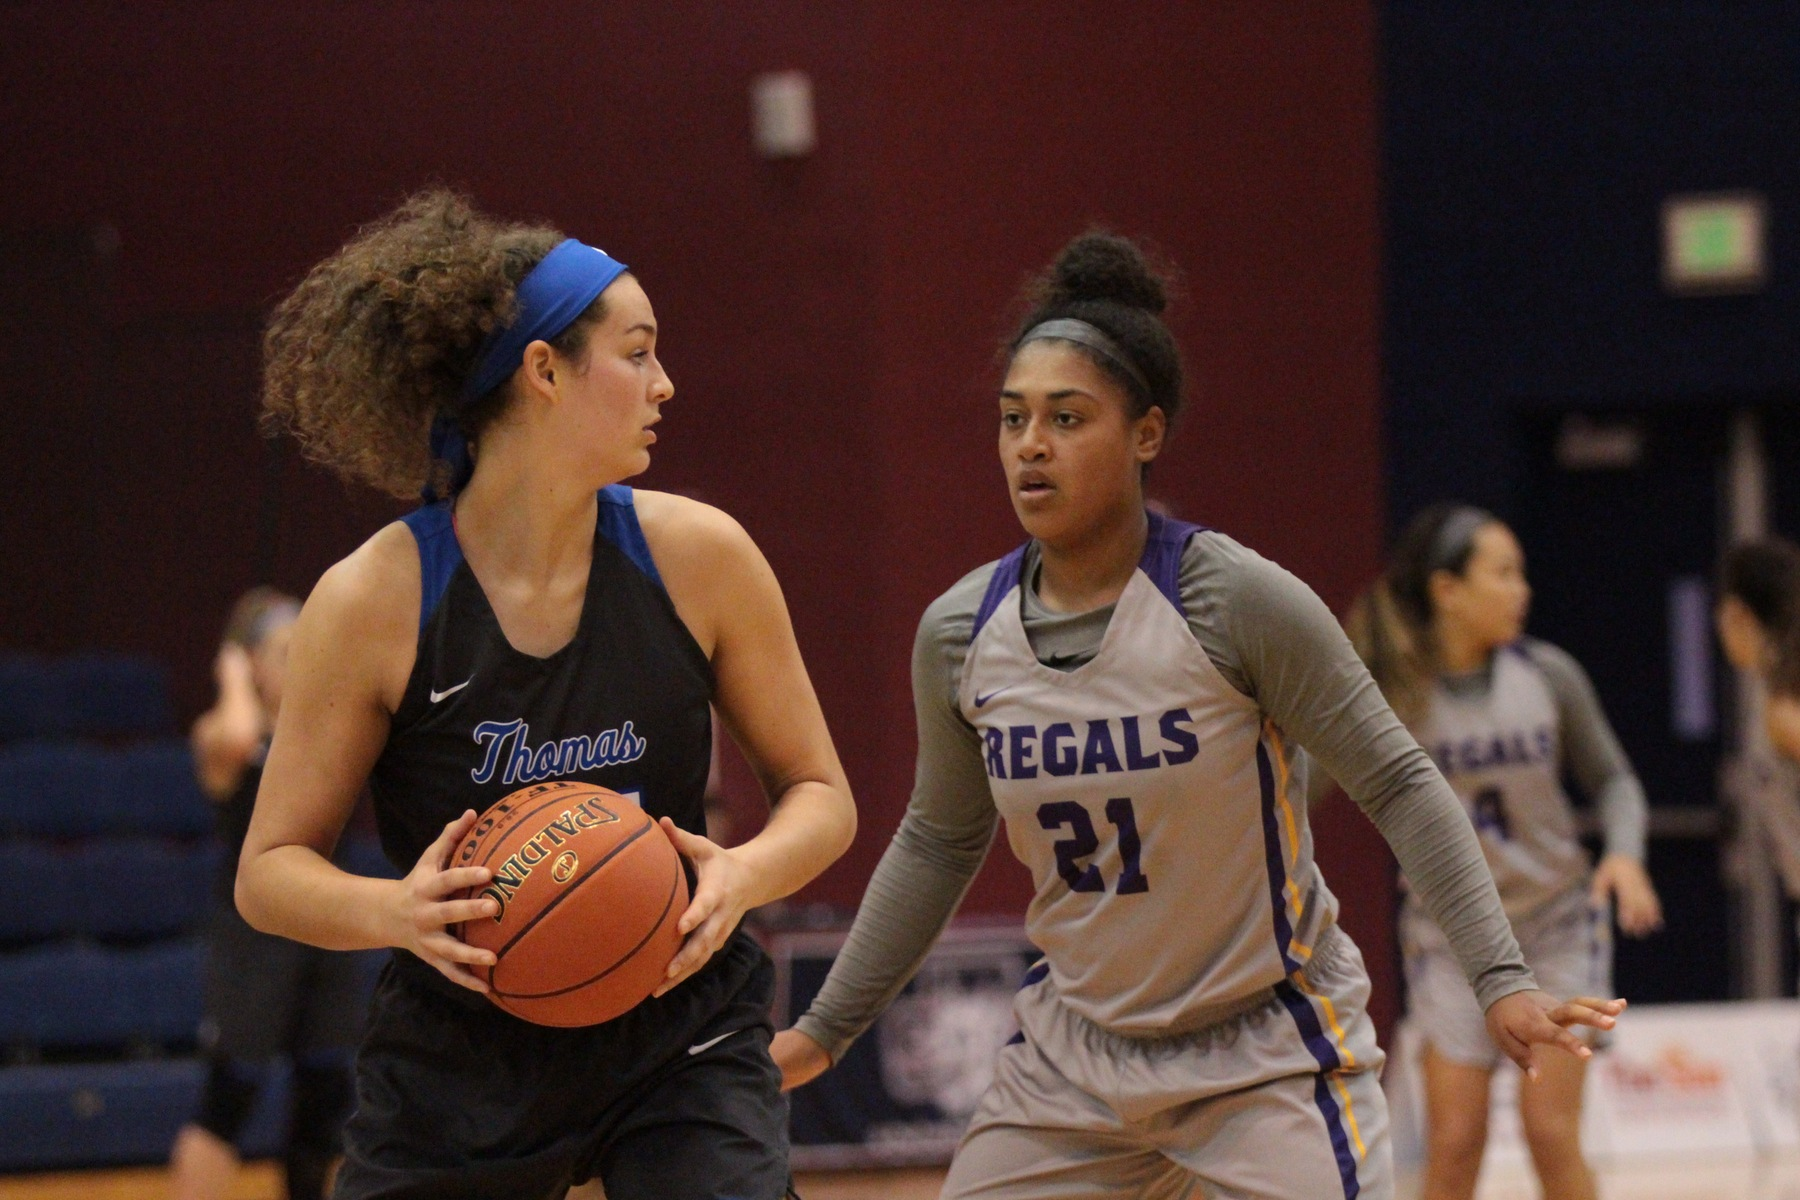 Regals Come Up Short Against No. 2 Thomas More